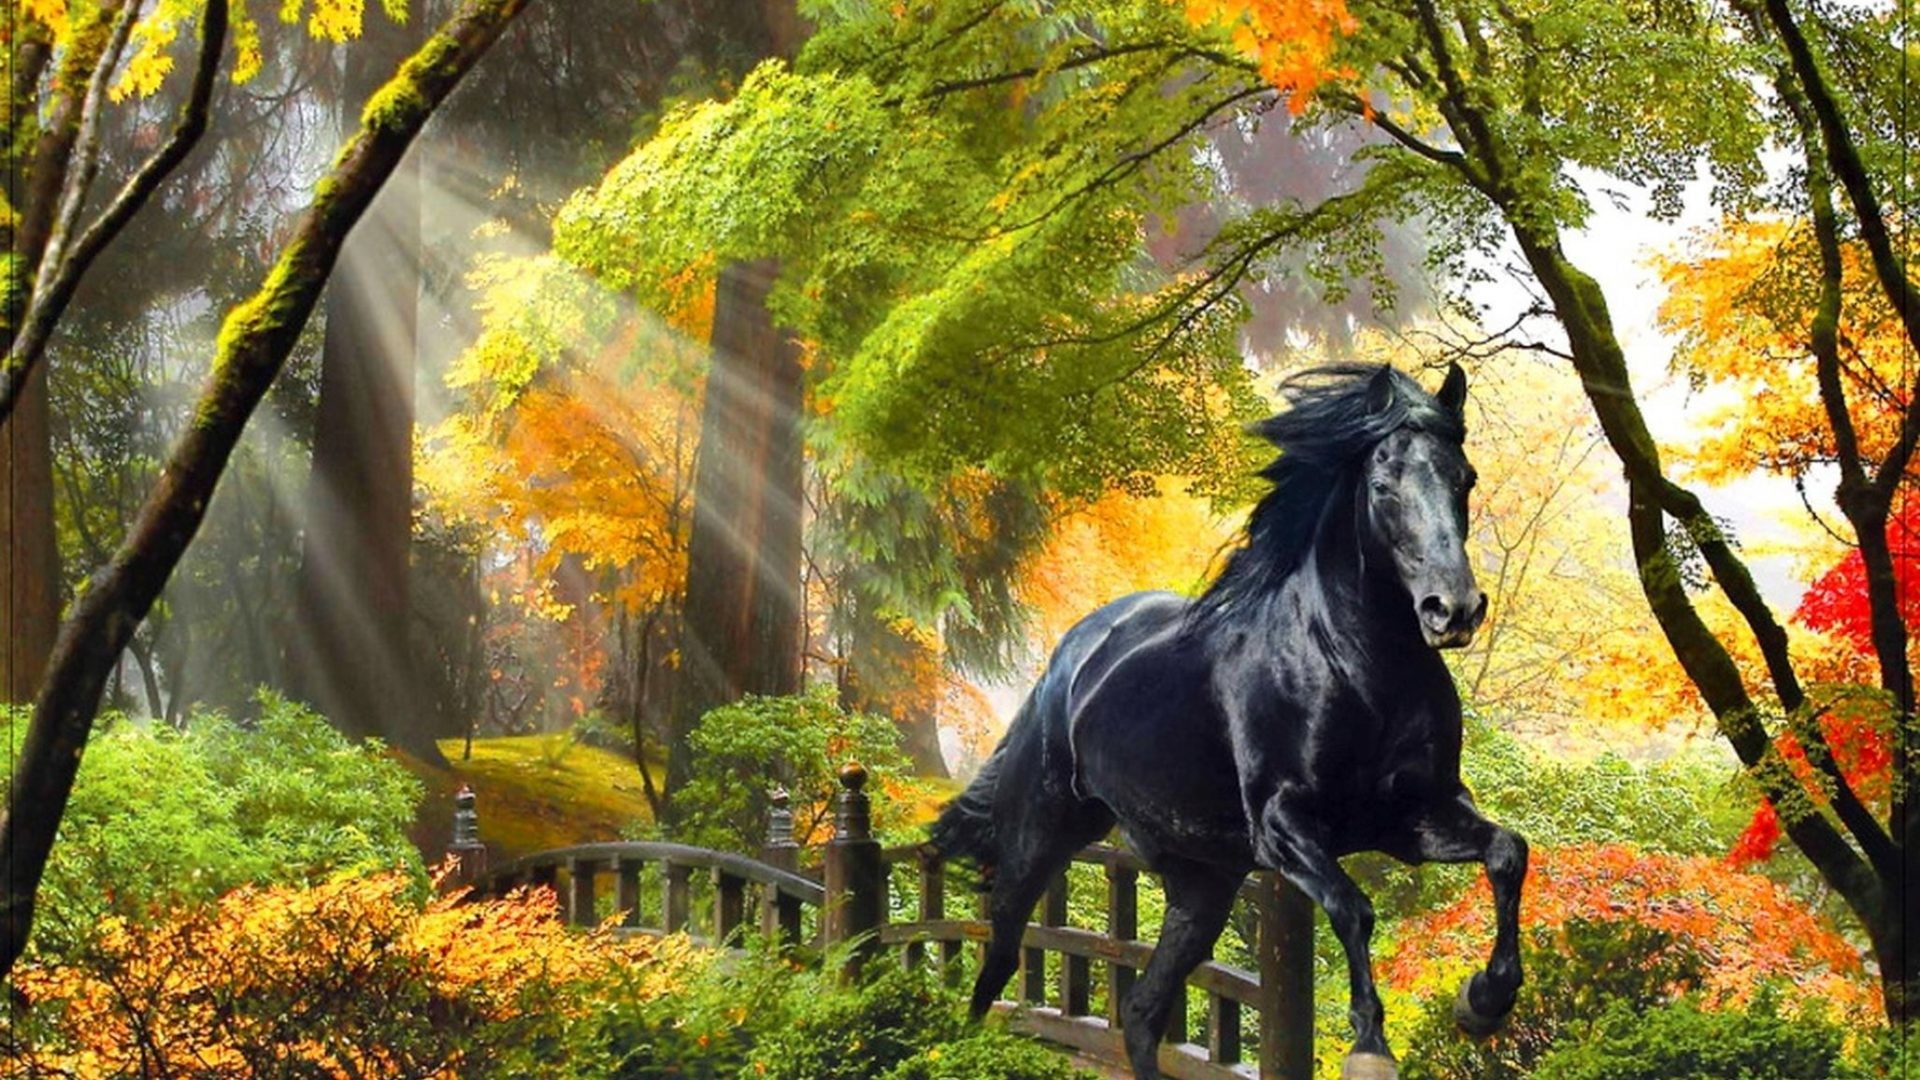 Res: 1920x1080, Fall Horse Awesome Image – 231770566 Fall Horse Photos,  px